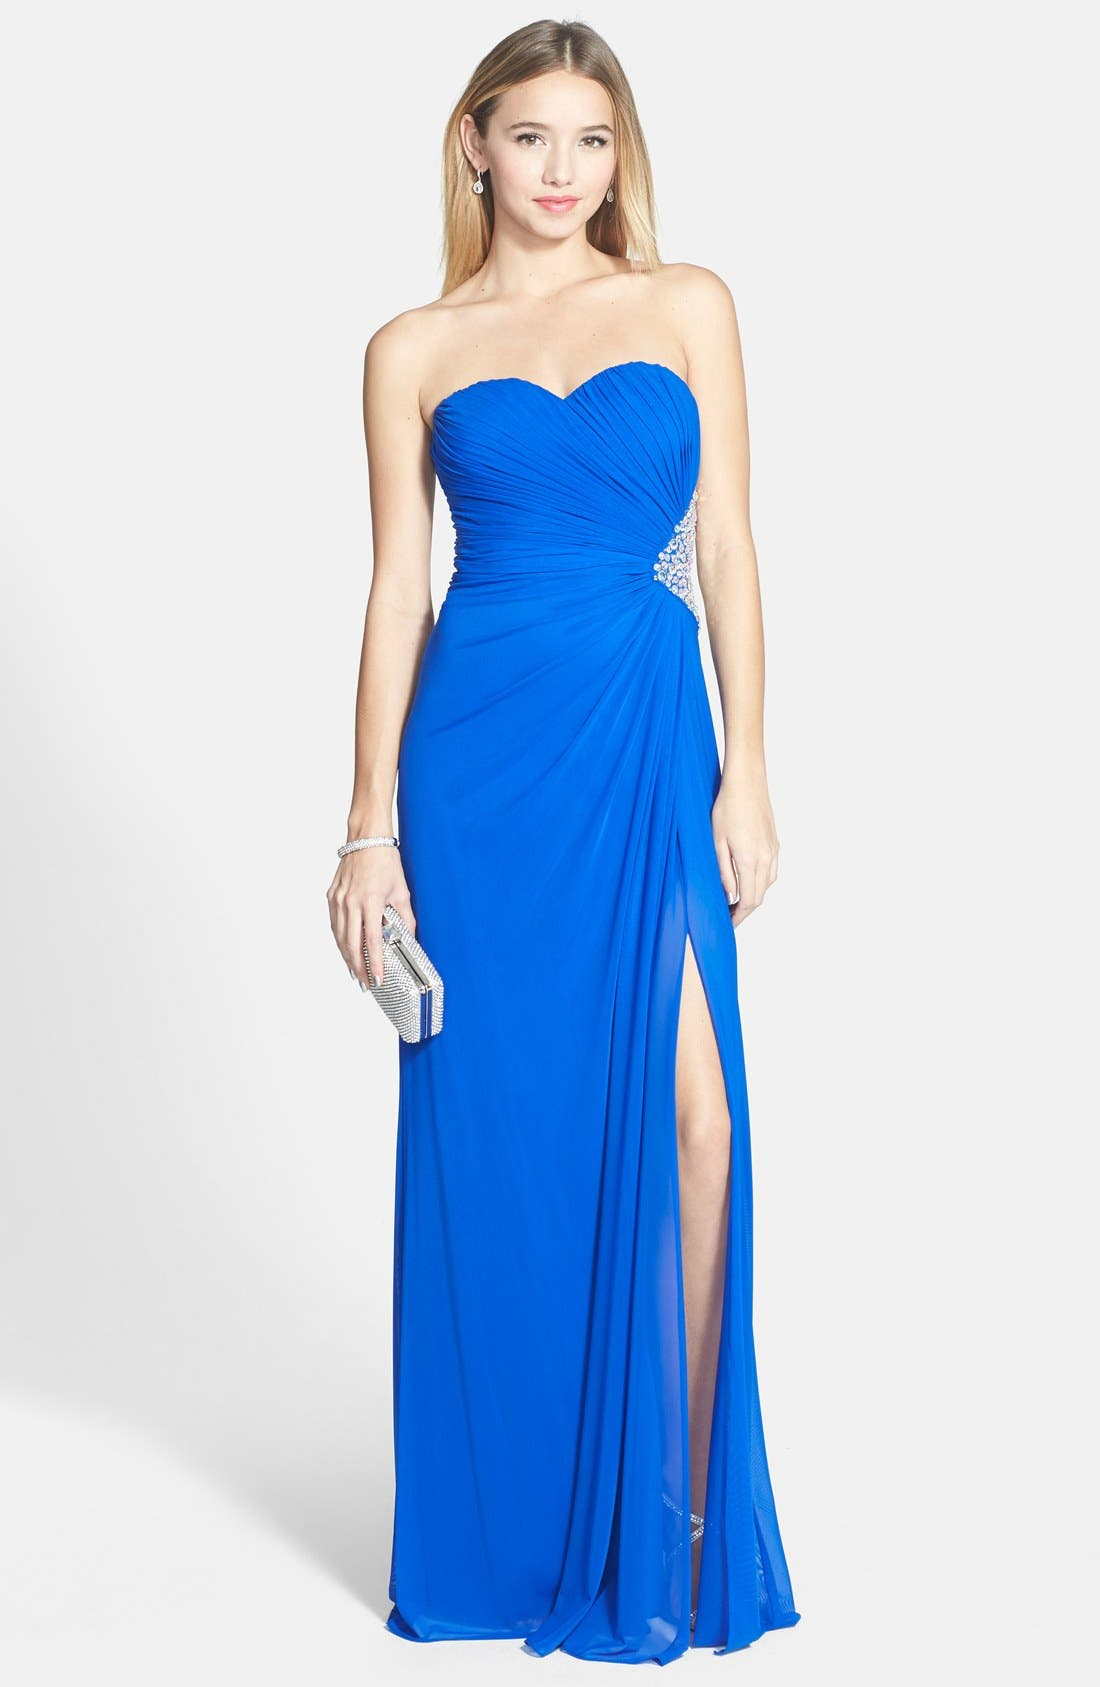 Alternate Image 1 Selected - Xscape Side Cutout Embellished Strapless Gown